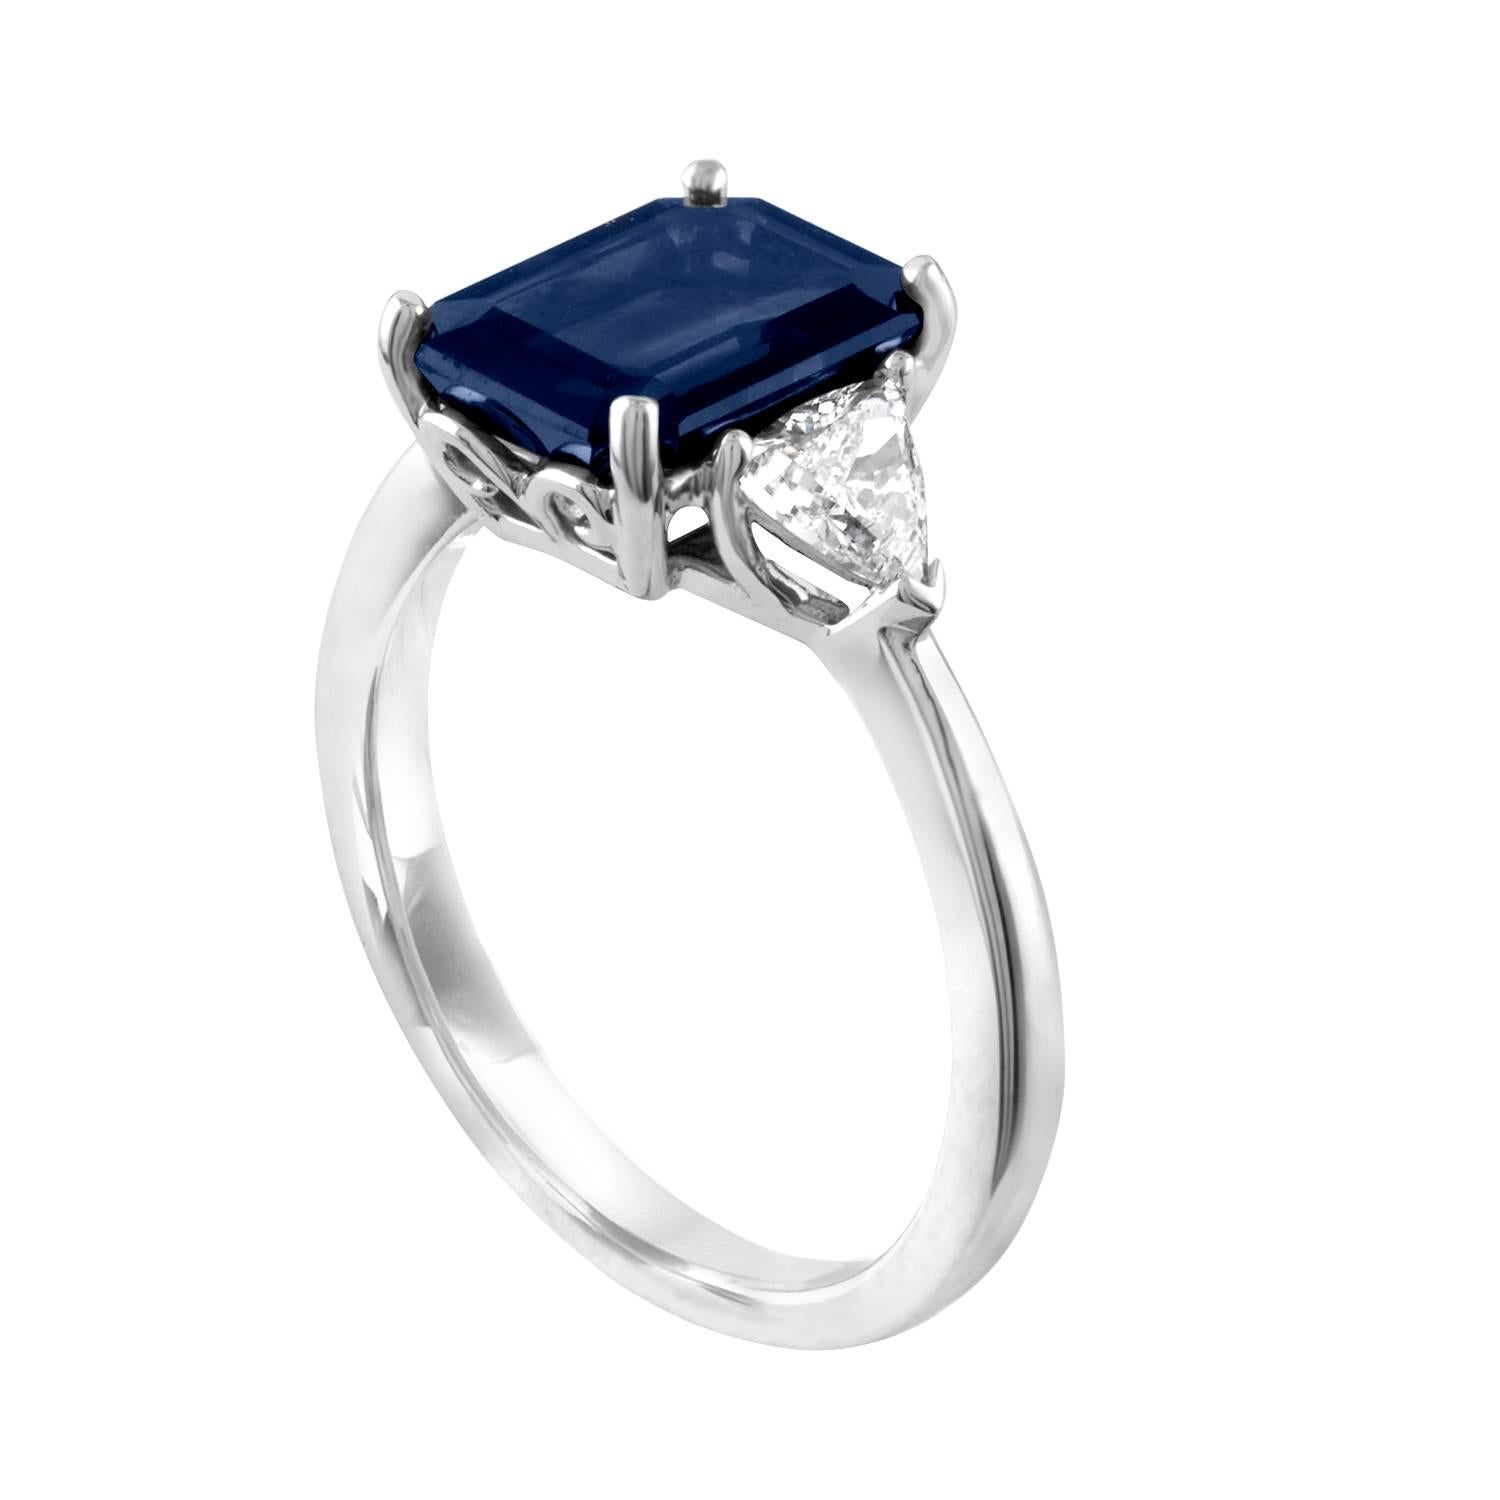 organic london reinhardt cut sapphire styles deep rings the ring flower engagement blue jr dark jana